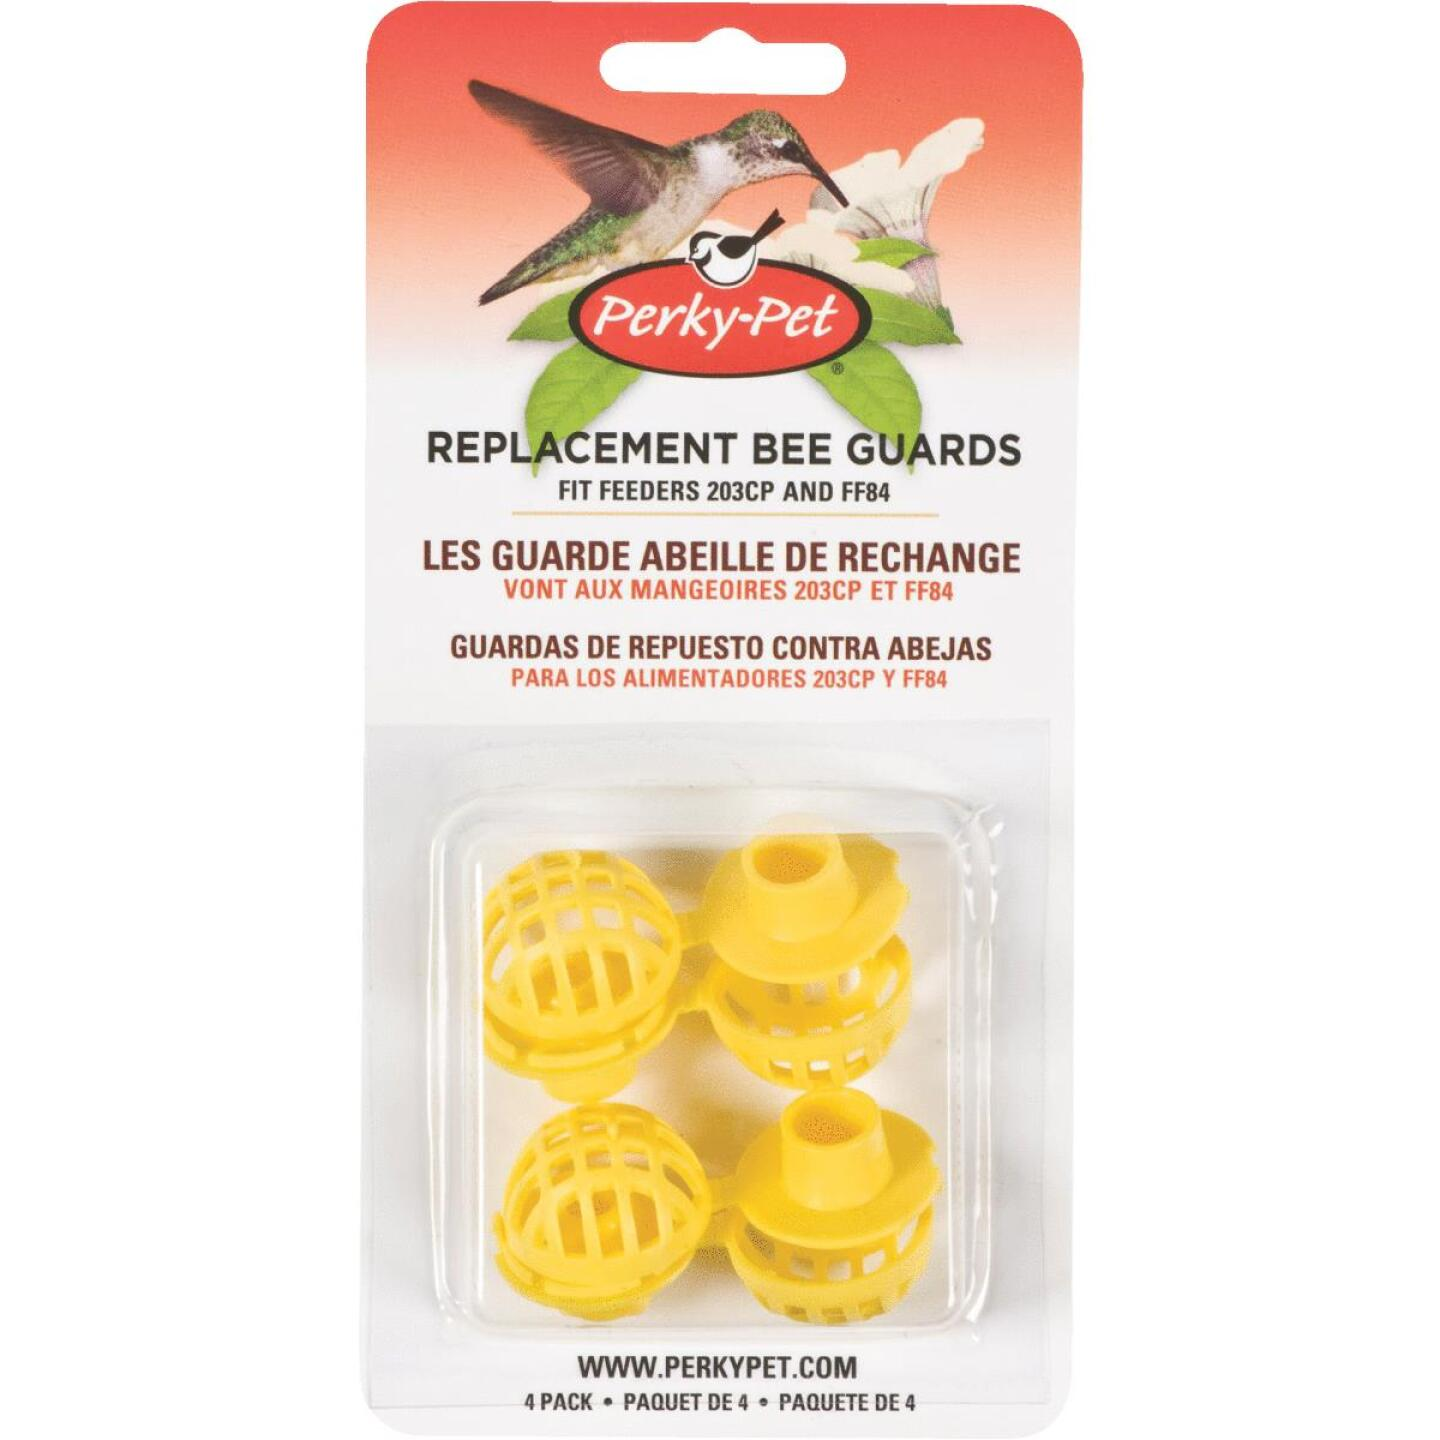 Perky-Pet Yellow Plastic Hummingbird Feeder Replacement Bee Guard (4-Pack) Image 1